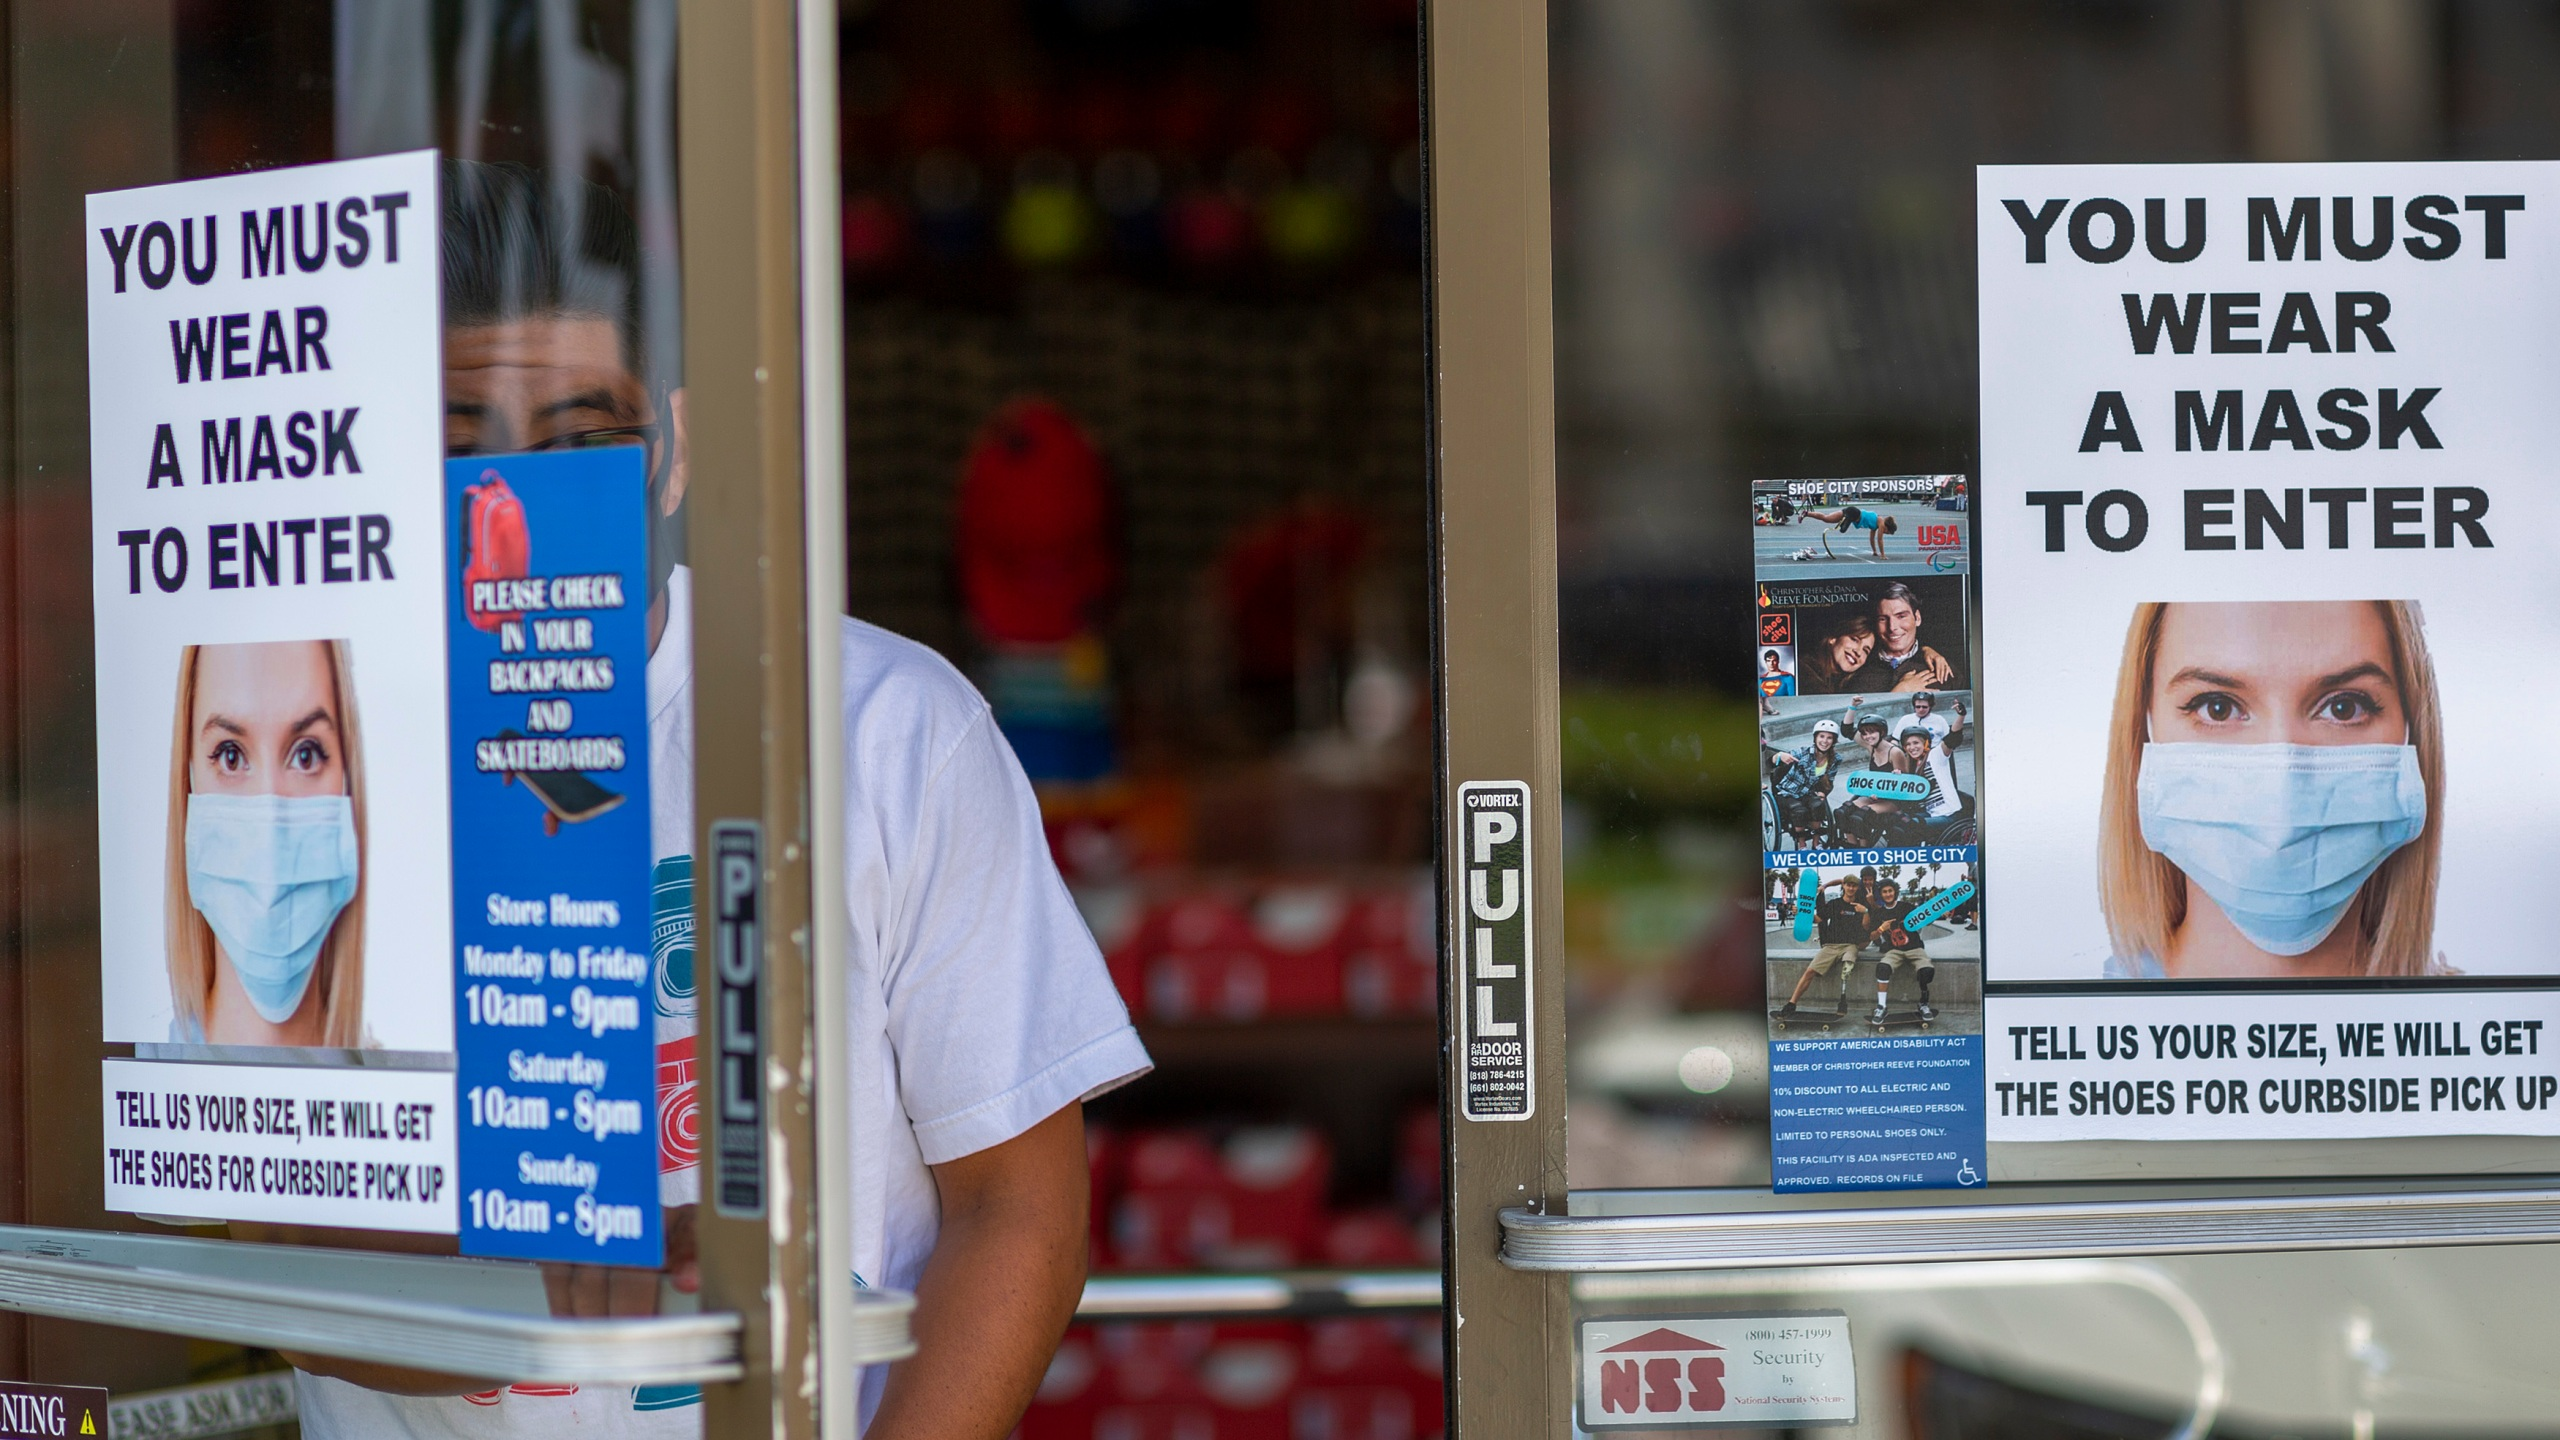 A man exits a store where masks are required for entry on May 27, 2020 in Glendale. (David McNew/Getty Images)